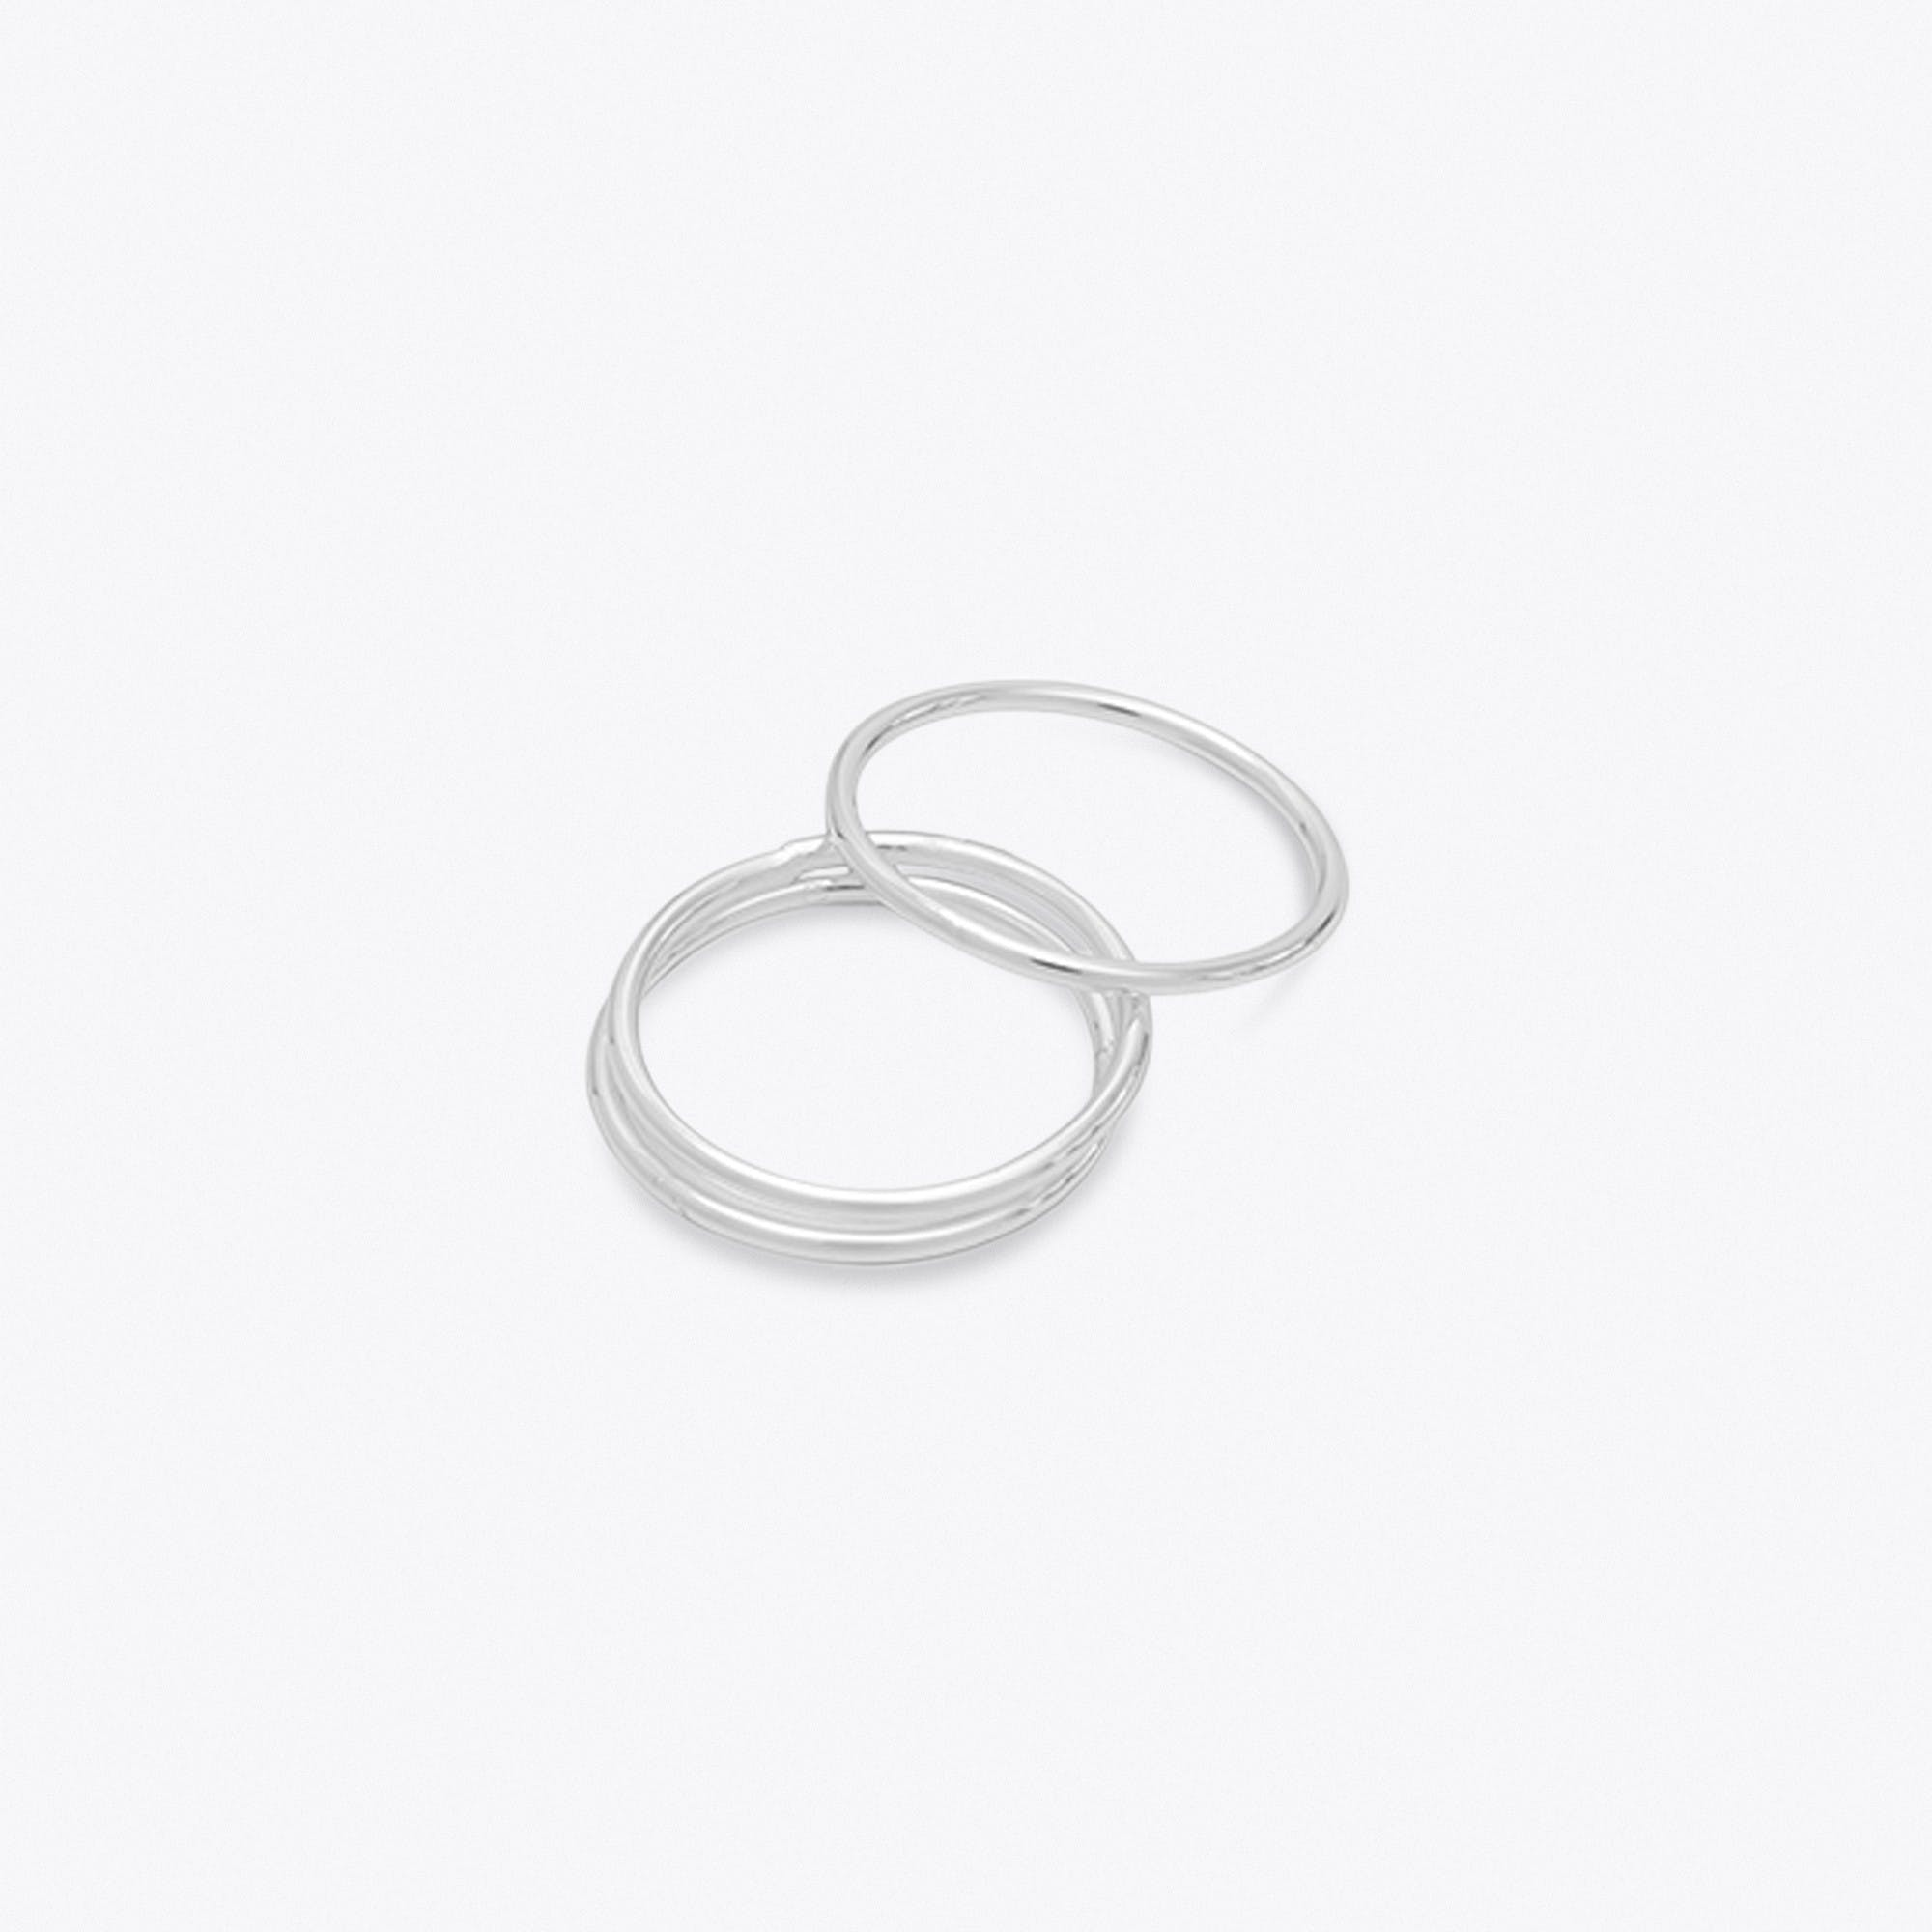 Thin Silver Stacking Rings (set of 3)